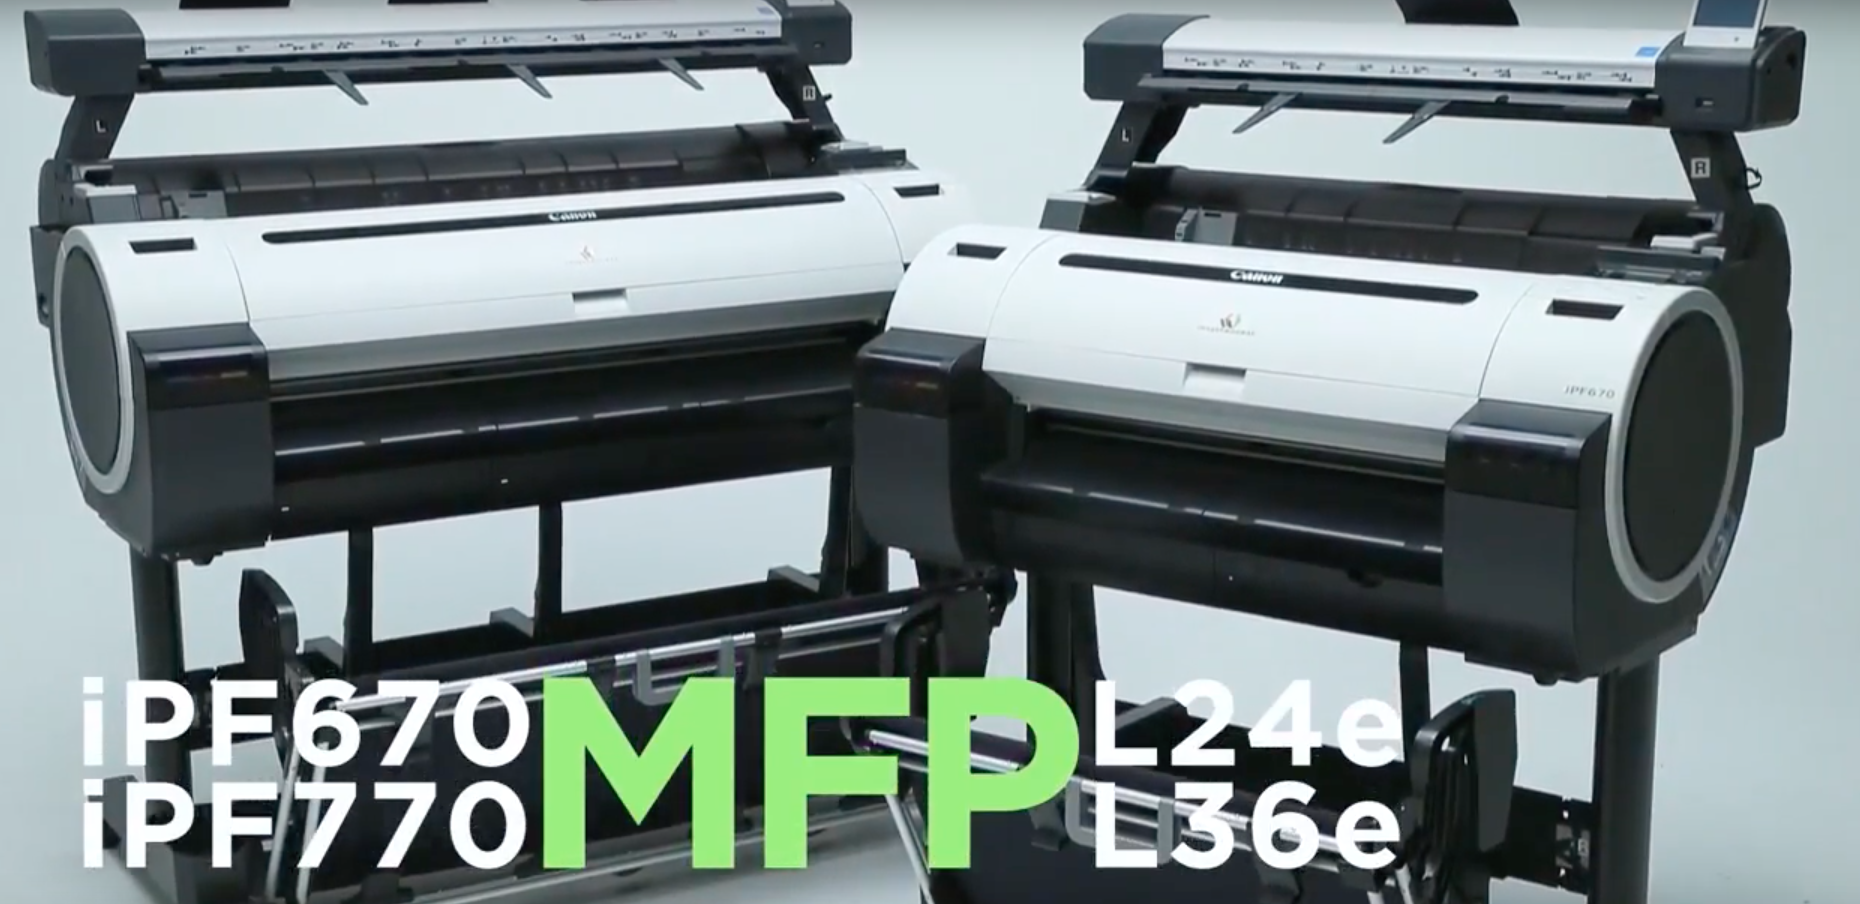 Canon imagePROGRAF 670 L24e and 770 L36e MFP Series graphic